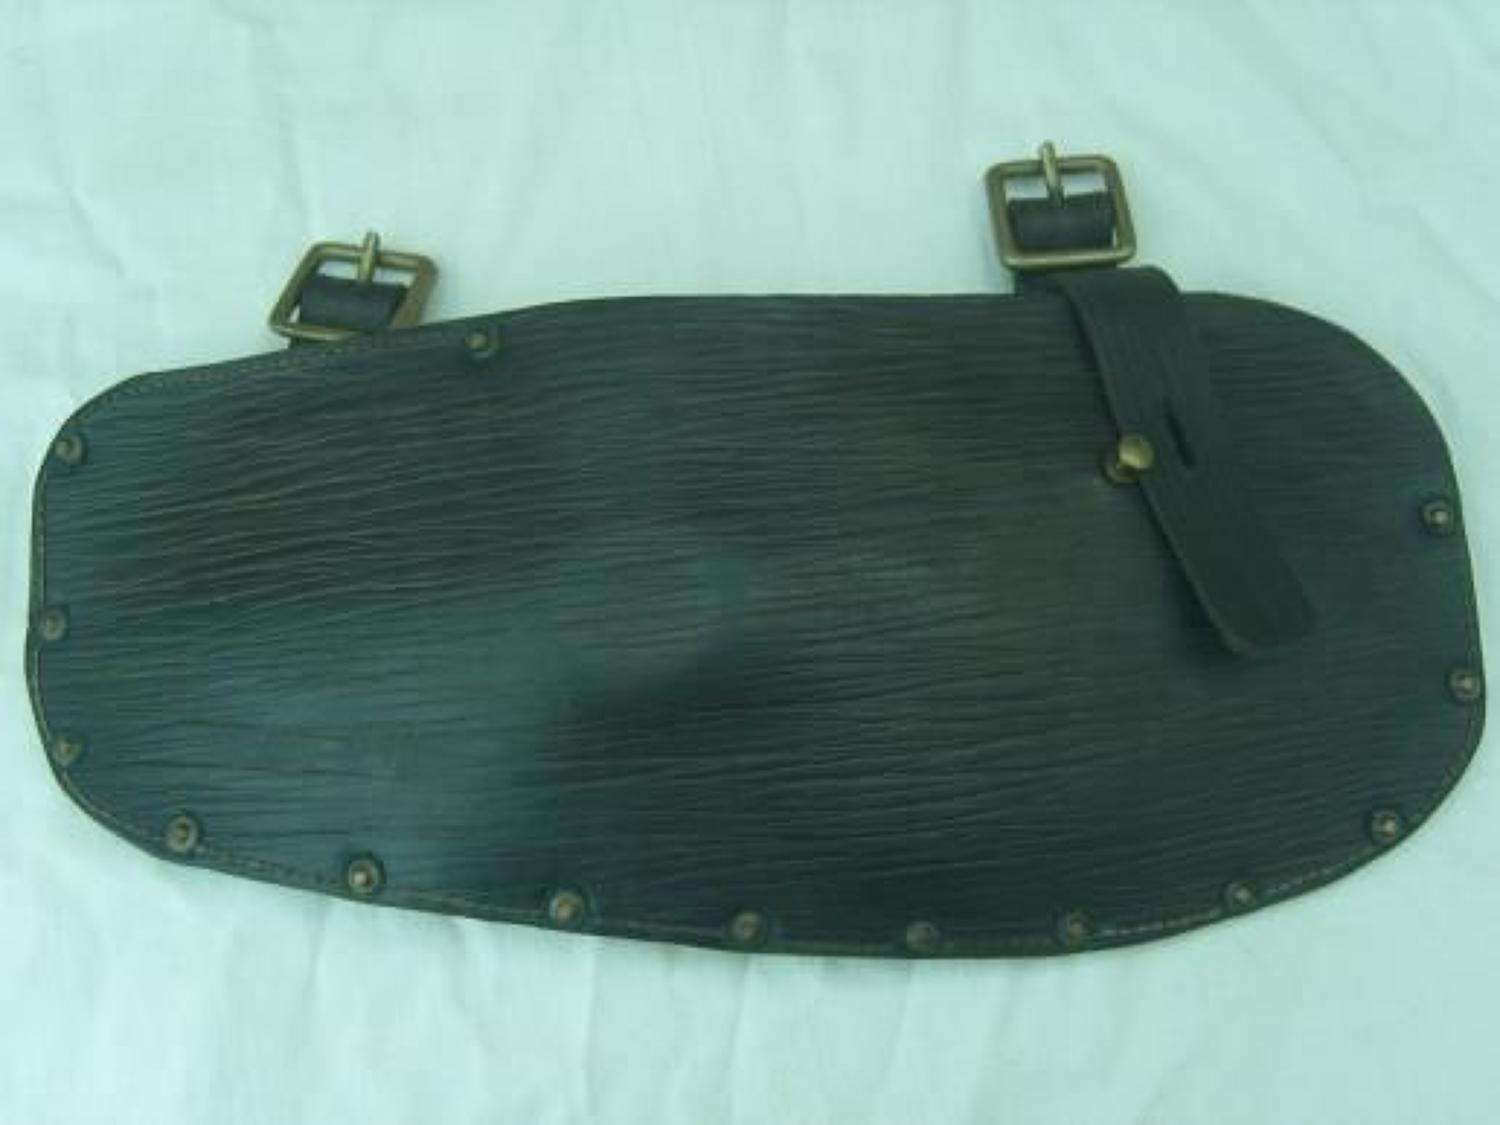 Original British 1914 pattern leather entrenching tool head carrier